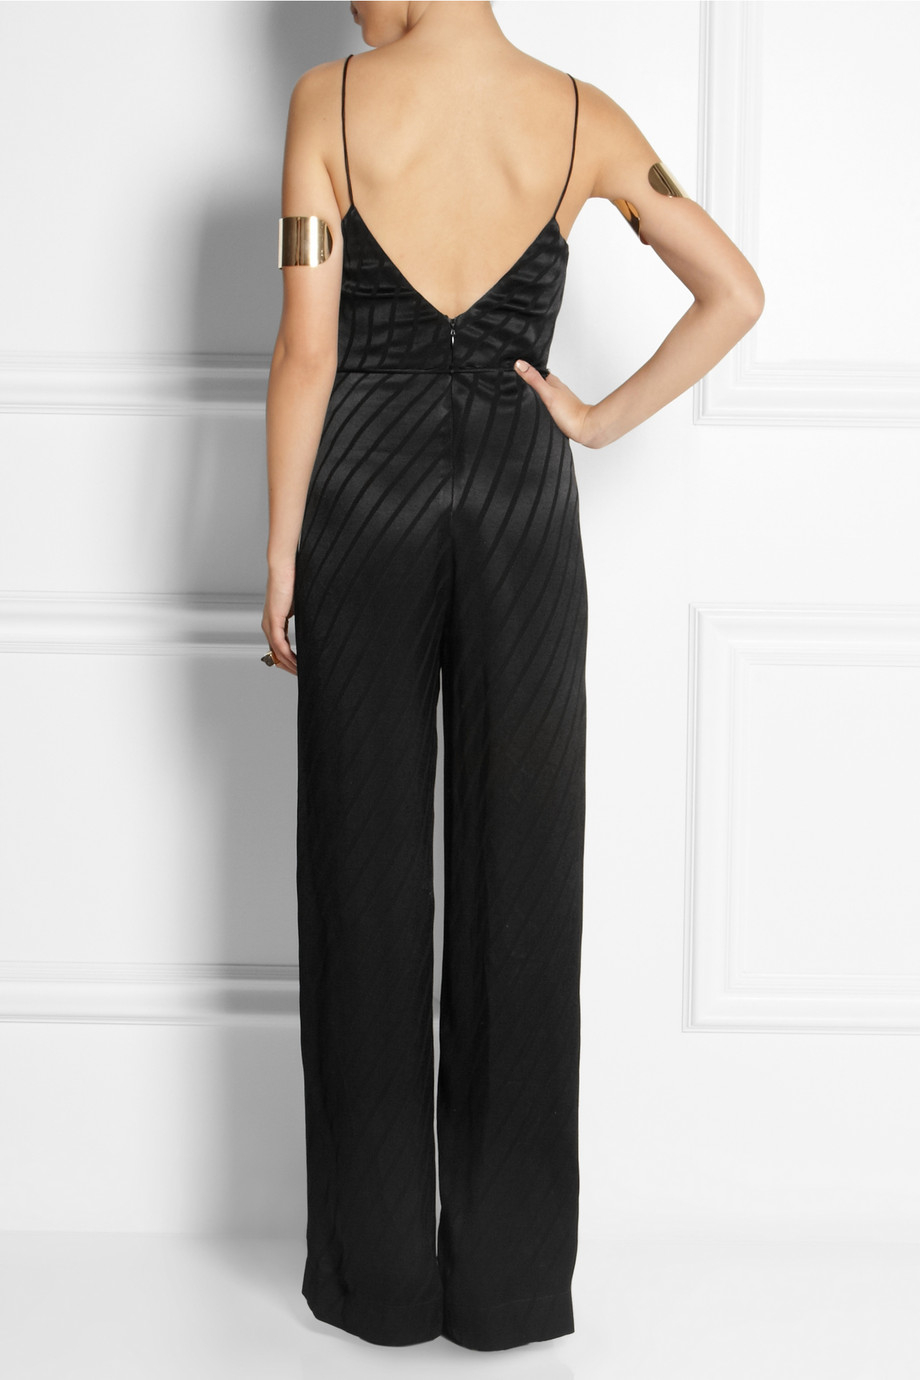 761ce038ab3 Lyst - TOPSHOP Striped Satin Jumpsuit in Black